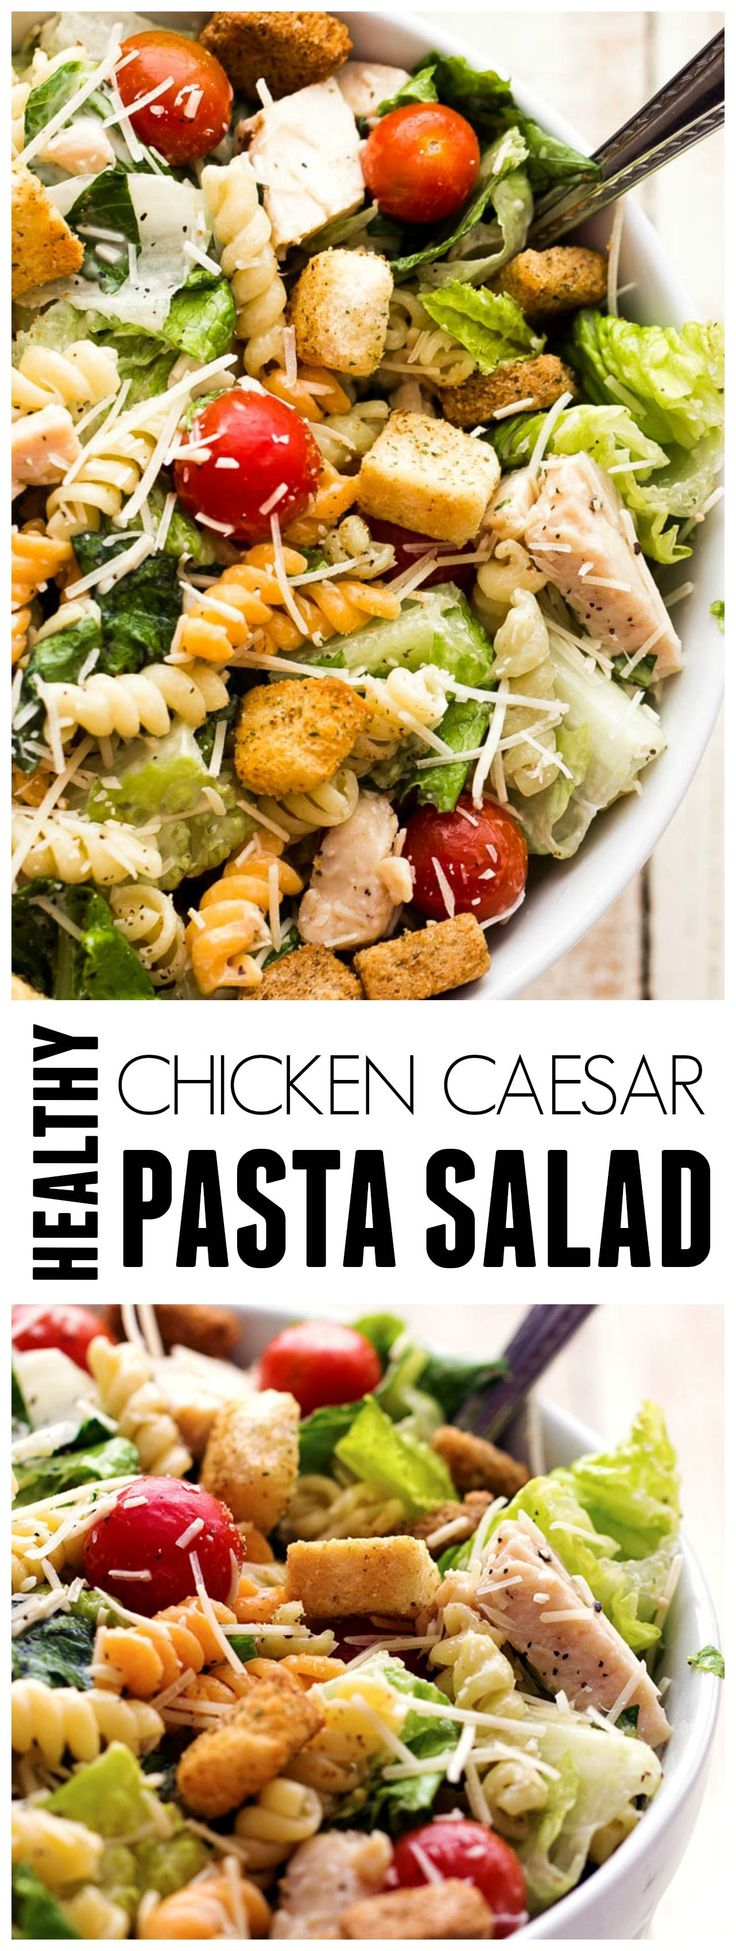 This Chicken Caesar Salad is made with healthier ingredients and a vegetable enriched pasta adds an amazing and delicious texture!